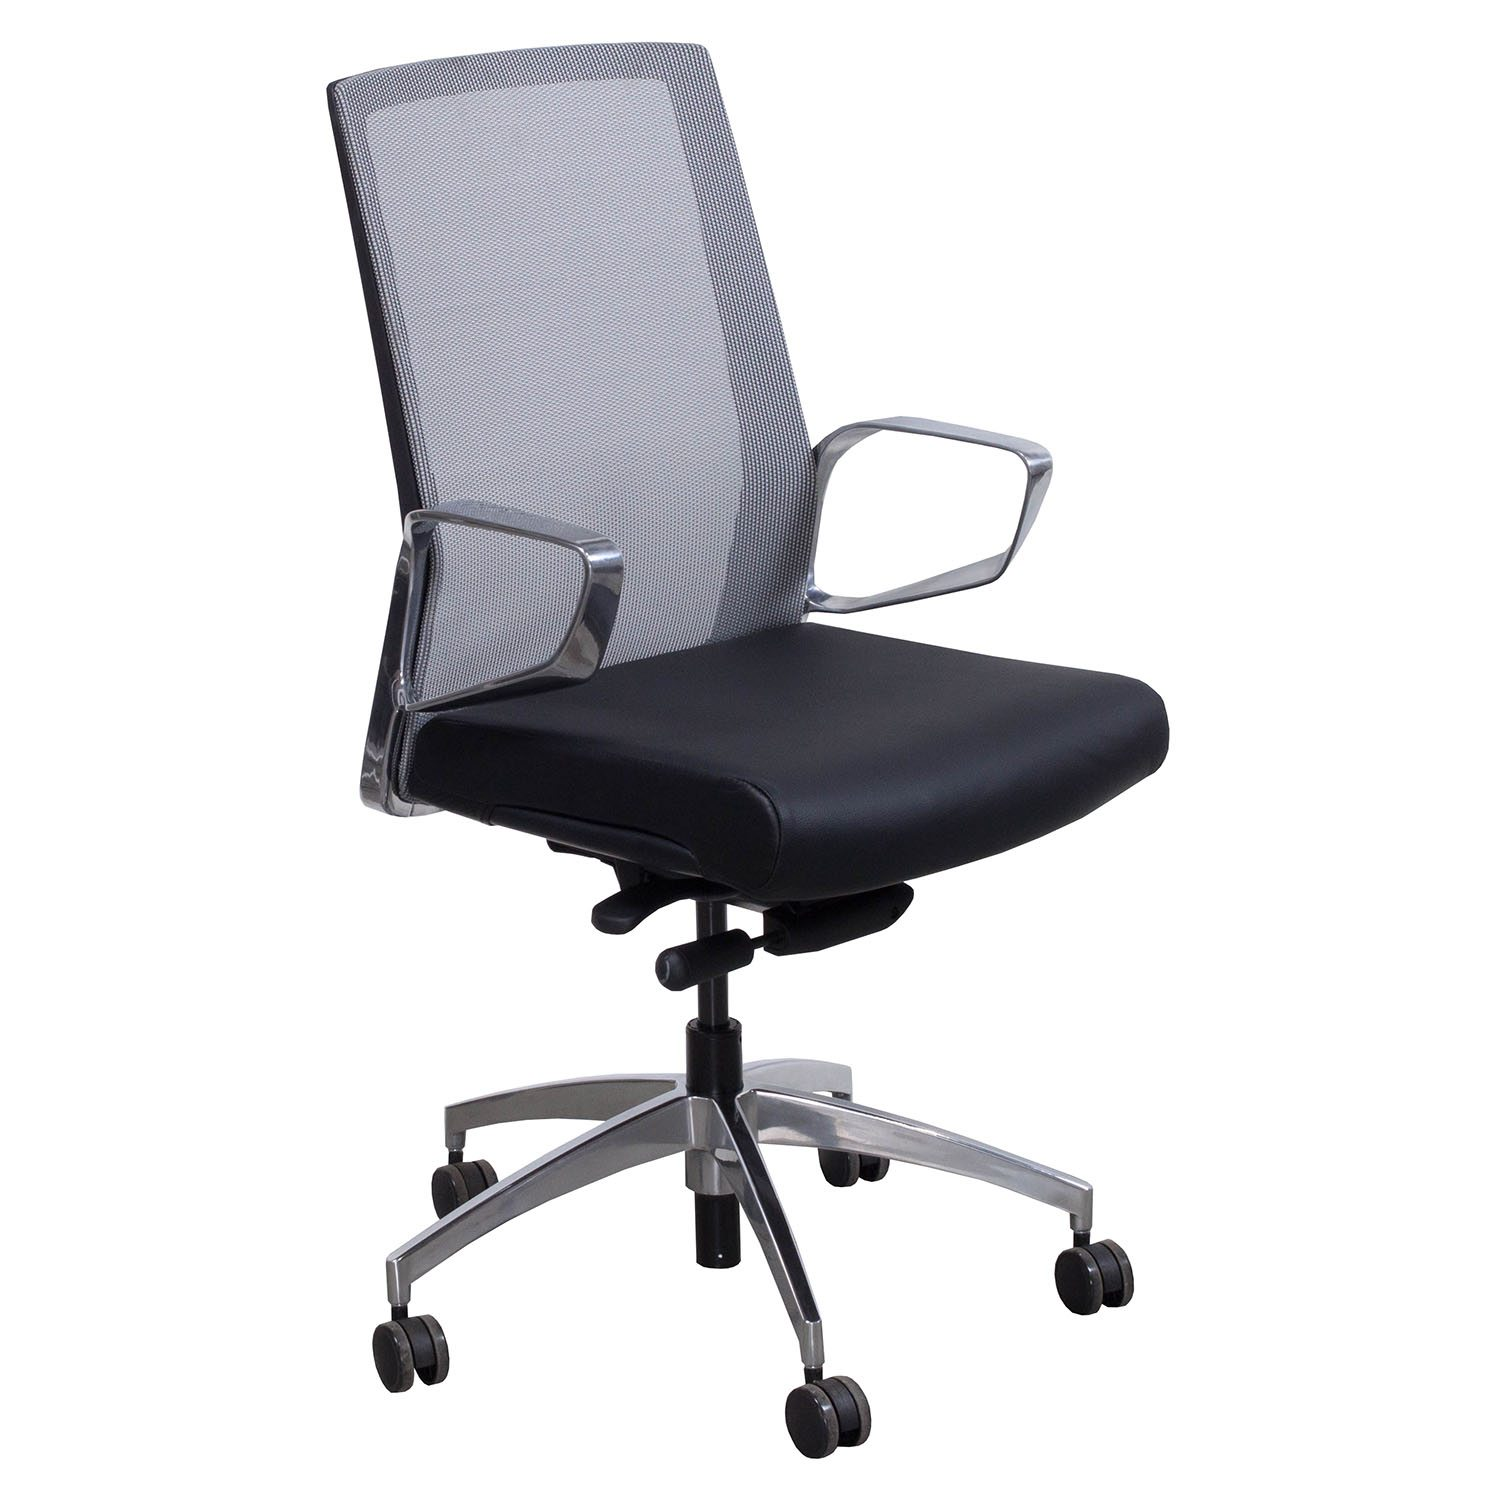 modern grey leather office chair swing benefits maris by gosit and mesh conference black